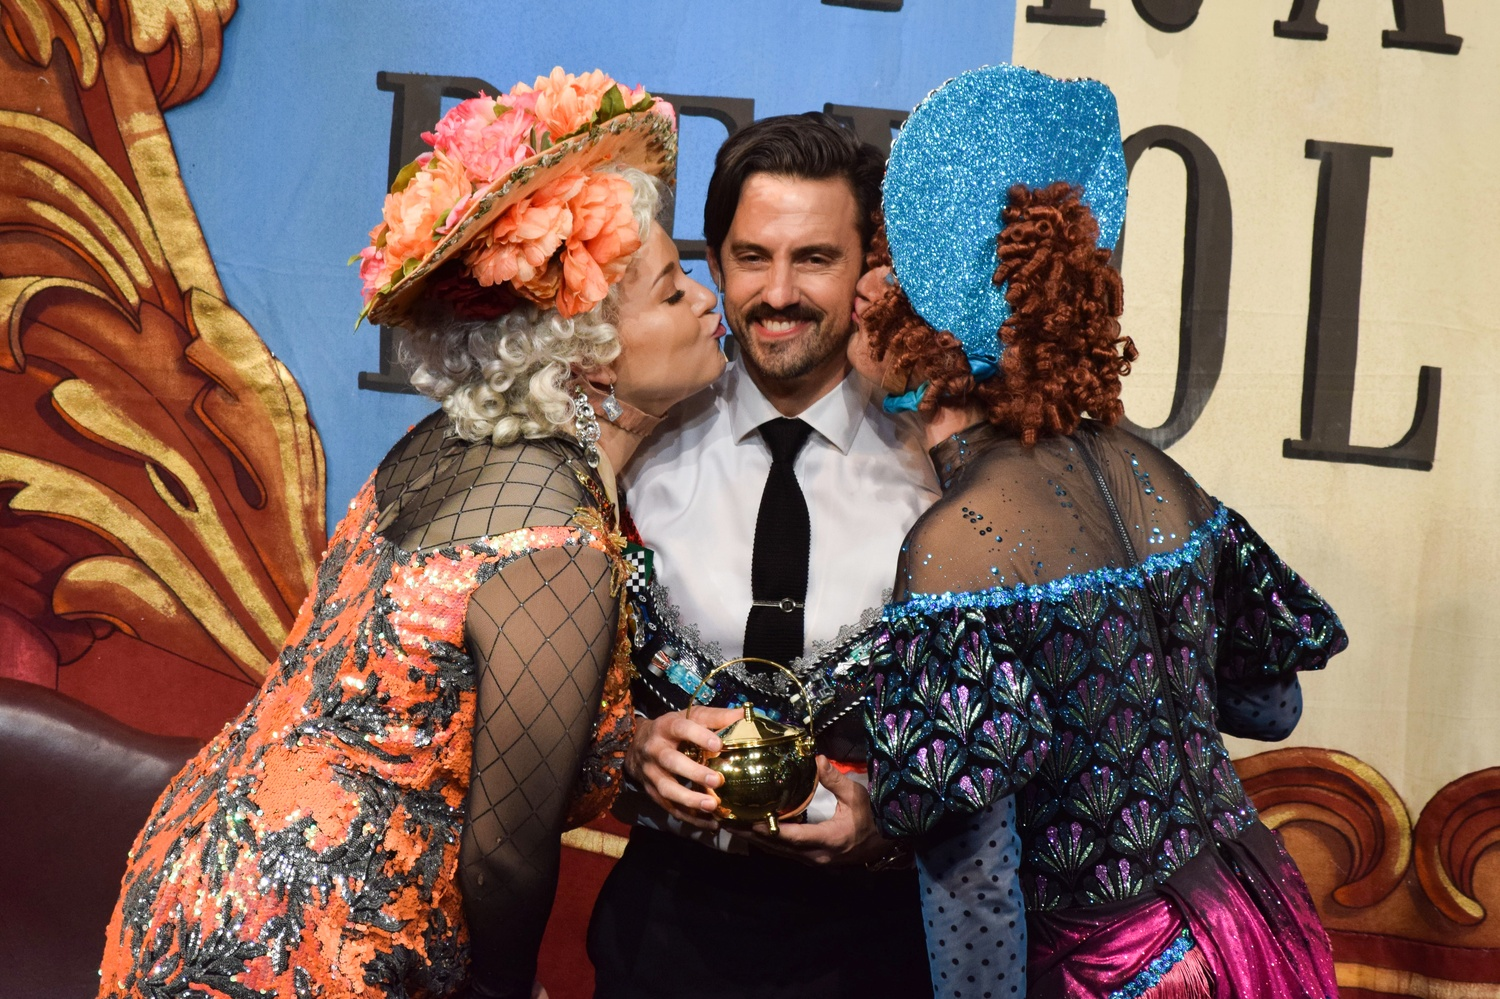 Milo Ventimiglia, who stars in the award-winning hit television drama This Is Us, was honored as the  2019 Man of the Year by Hasty Pudding Theatricals in Farkas Hall Friday night..